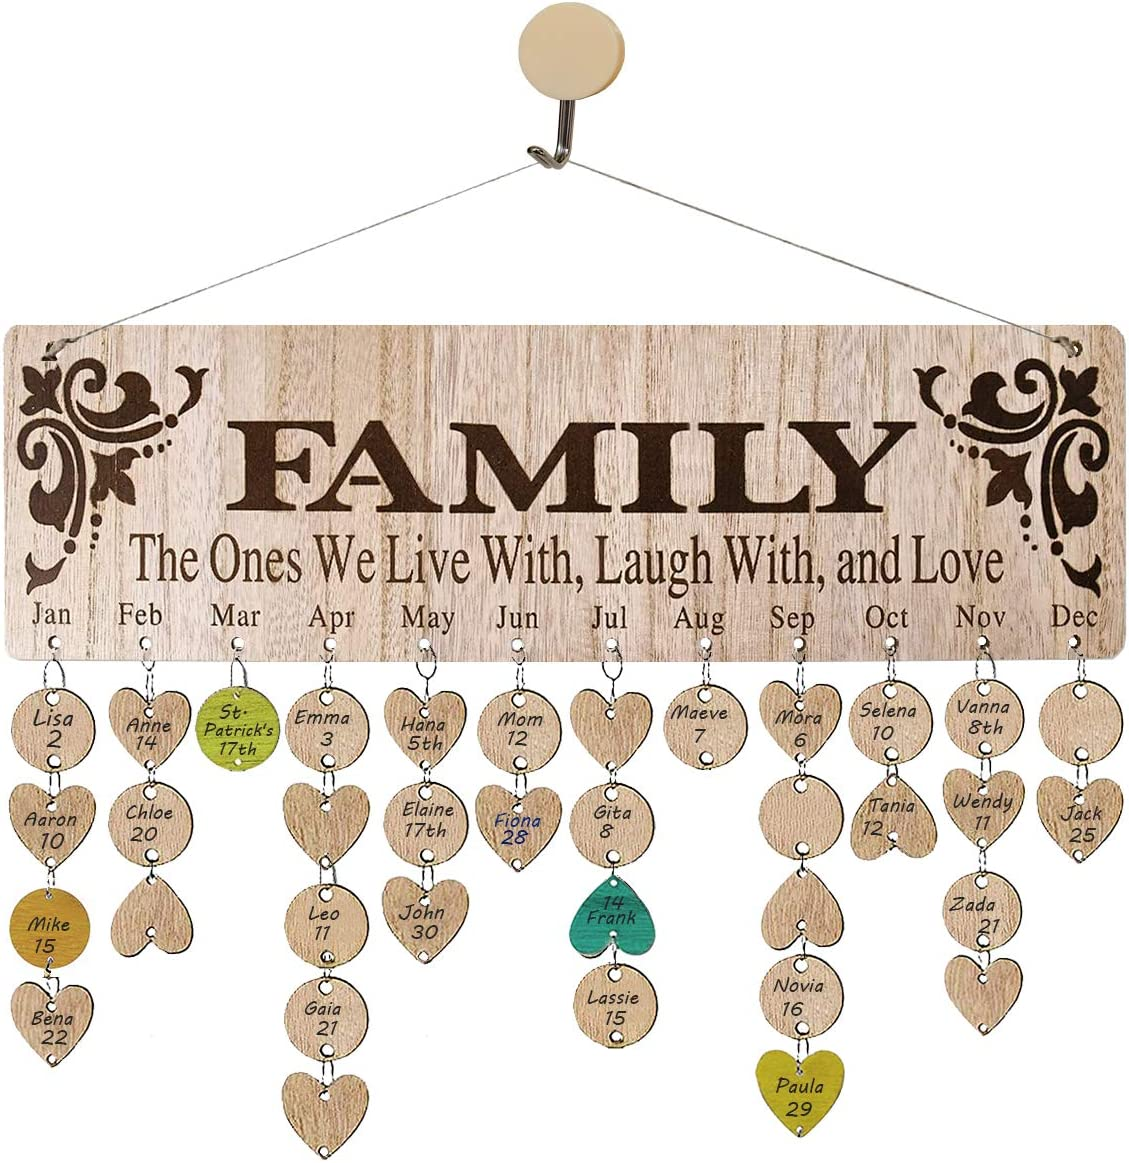 wellinc Personalized Gift for Grandma Unique, Family Birthday Reminder Calendar Board Wall Hanging, to Tracker Anniversary Events, Wood Birthday Plaque [Laser Engraved Family Pattern] for Home Decor